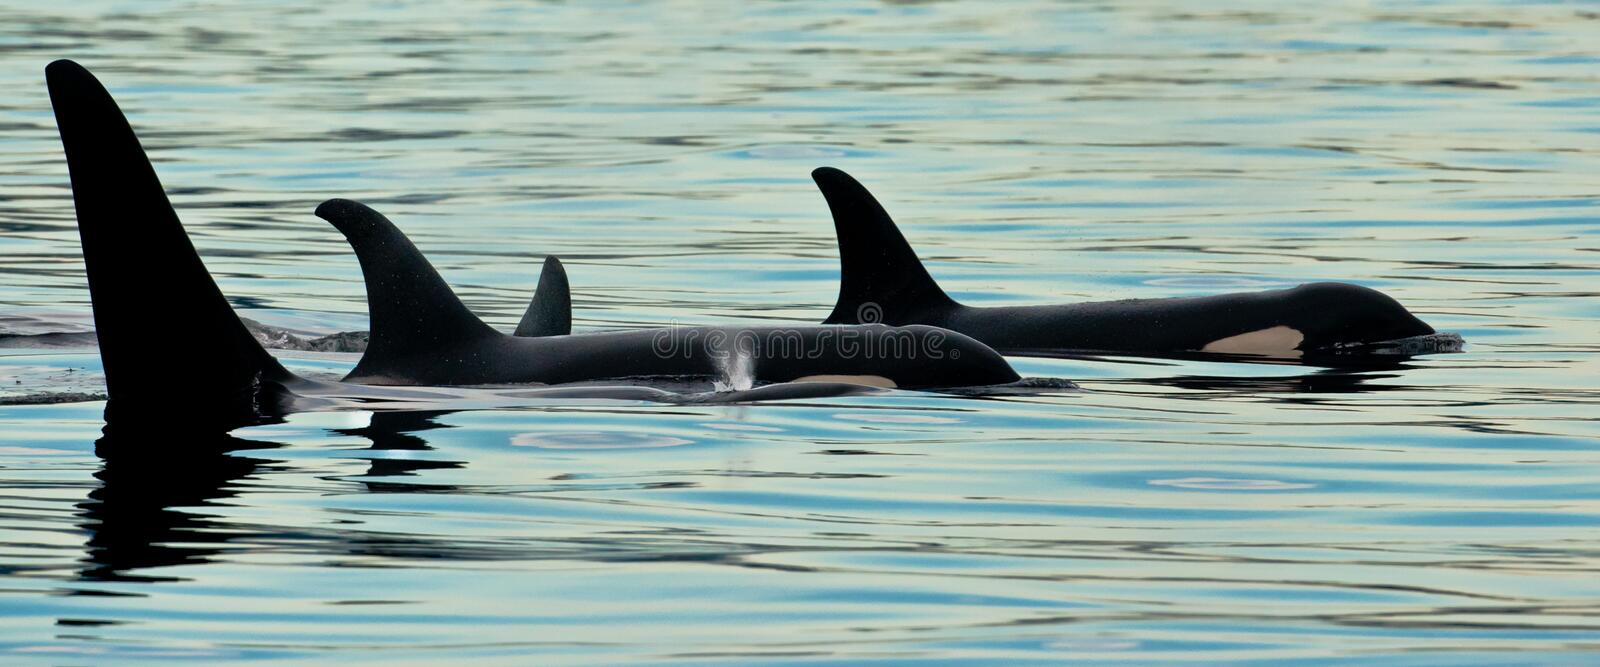 Small Pod of Orcas. Panoramic Composition of a Small Pod of Killer Whales Swimming Together stock image